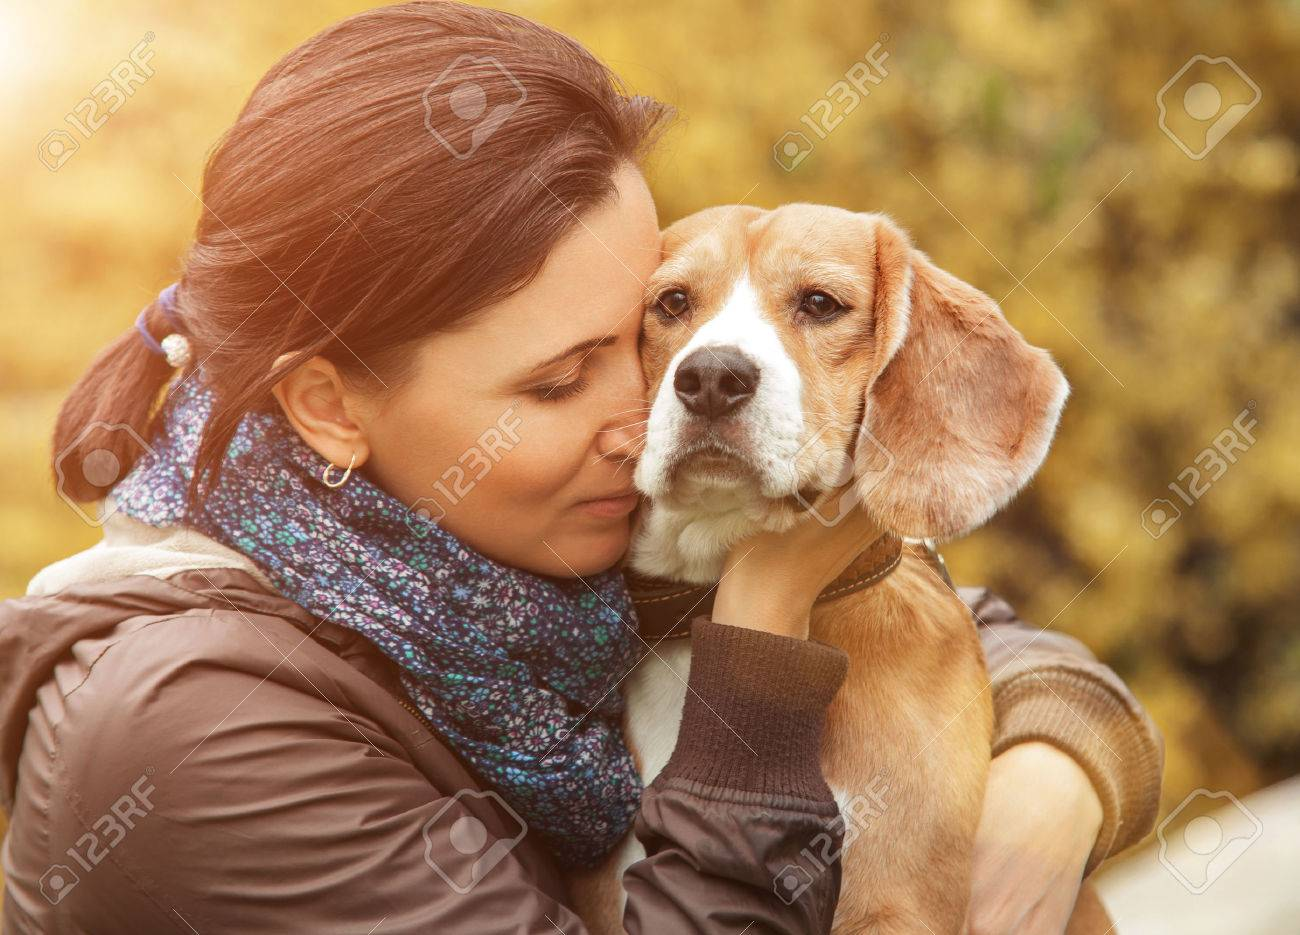 Woman and her favorite dog portrait - 45516688